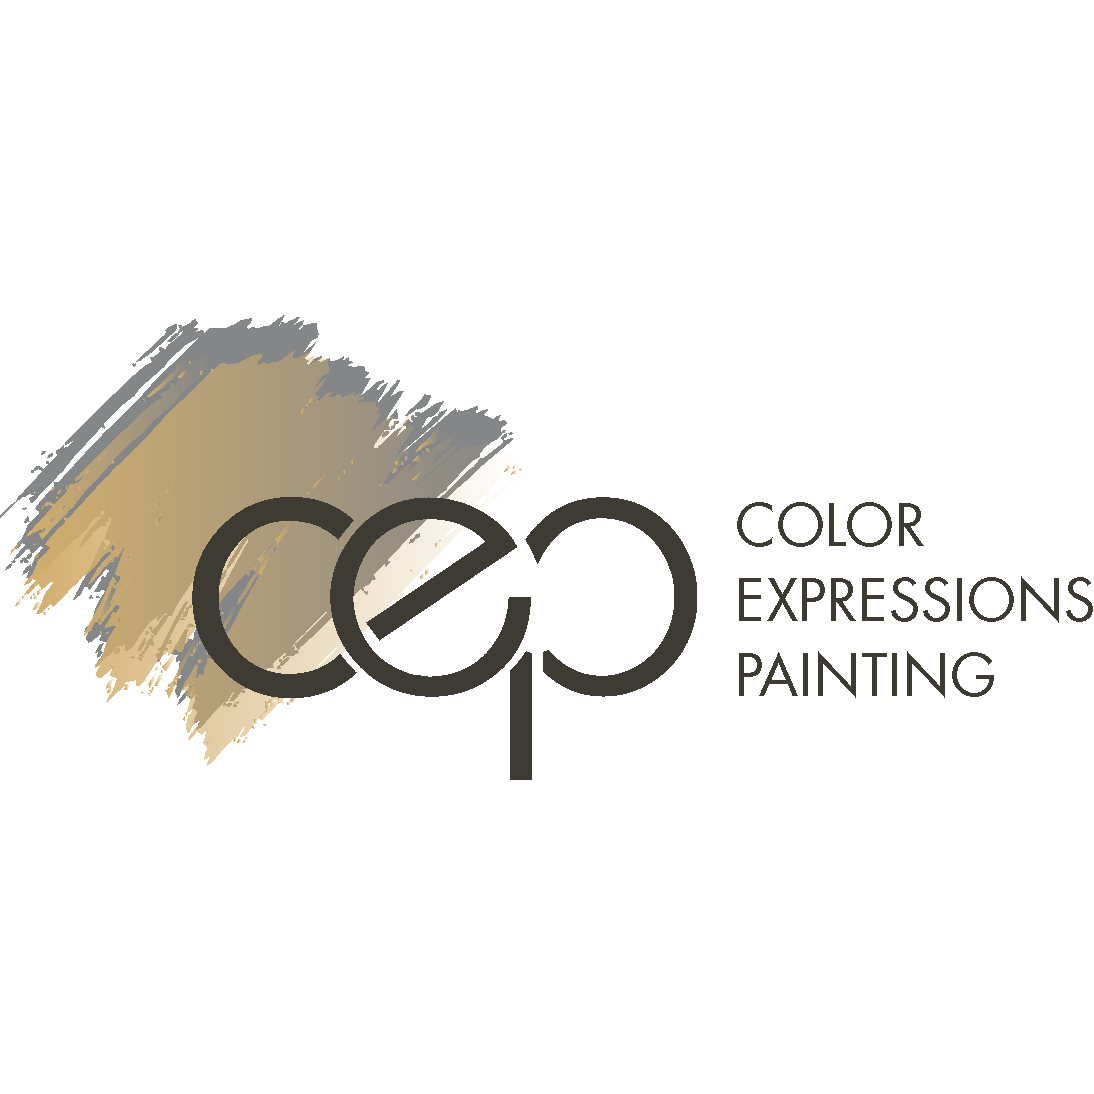 Color Expressions Painting